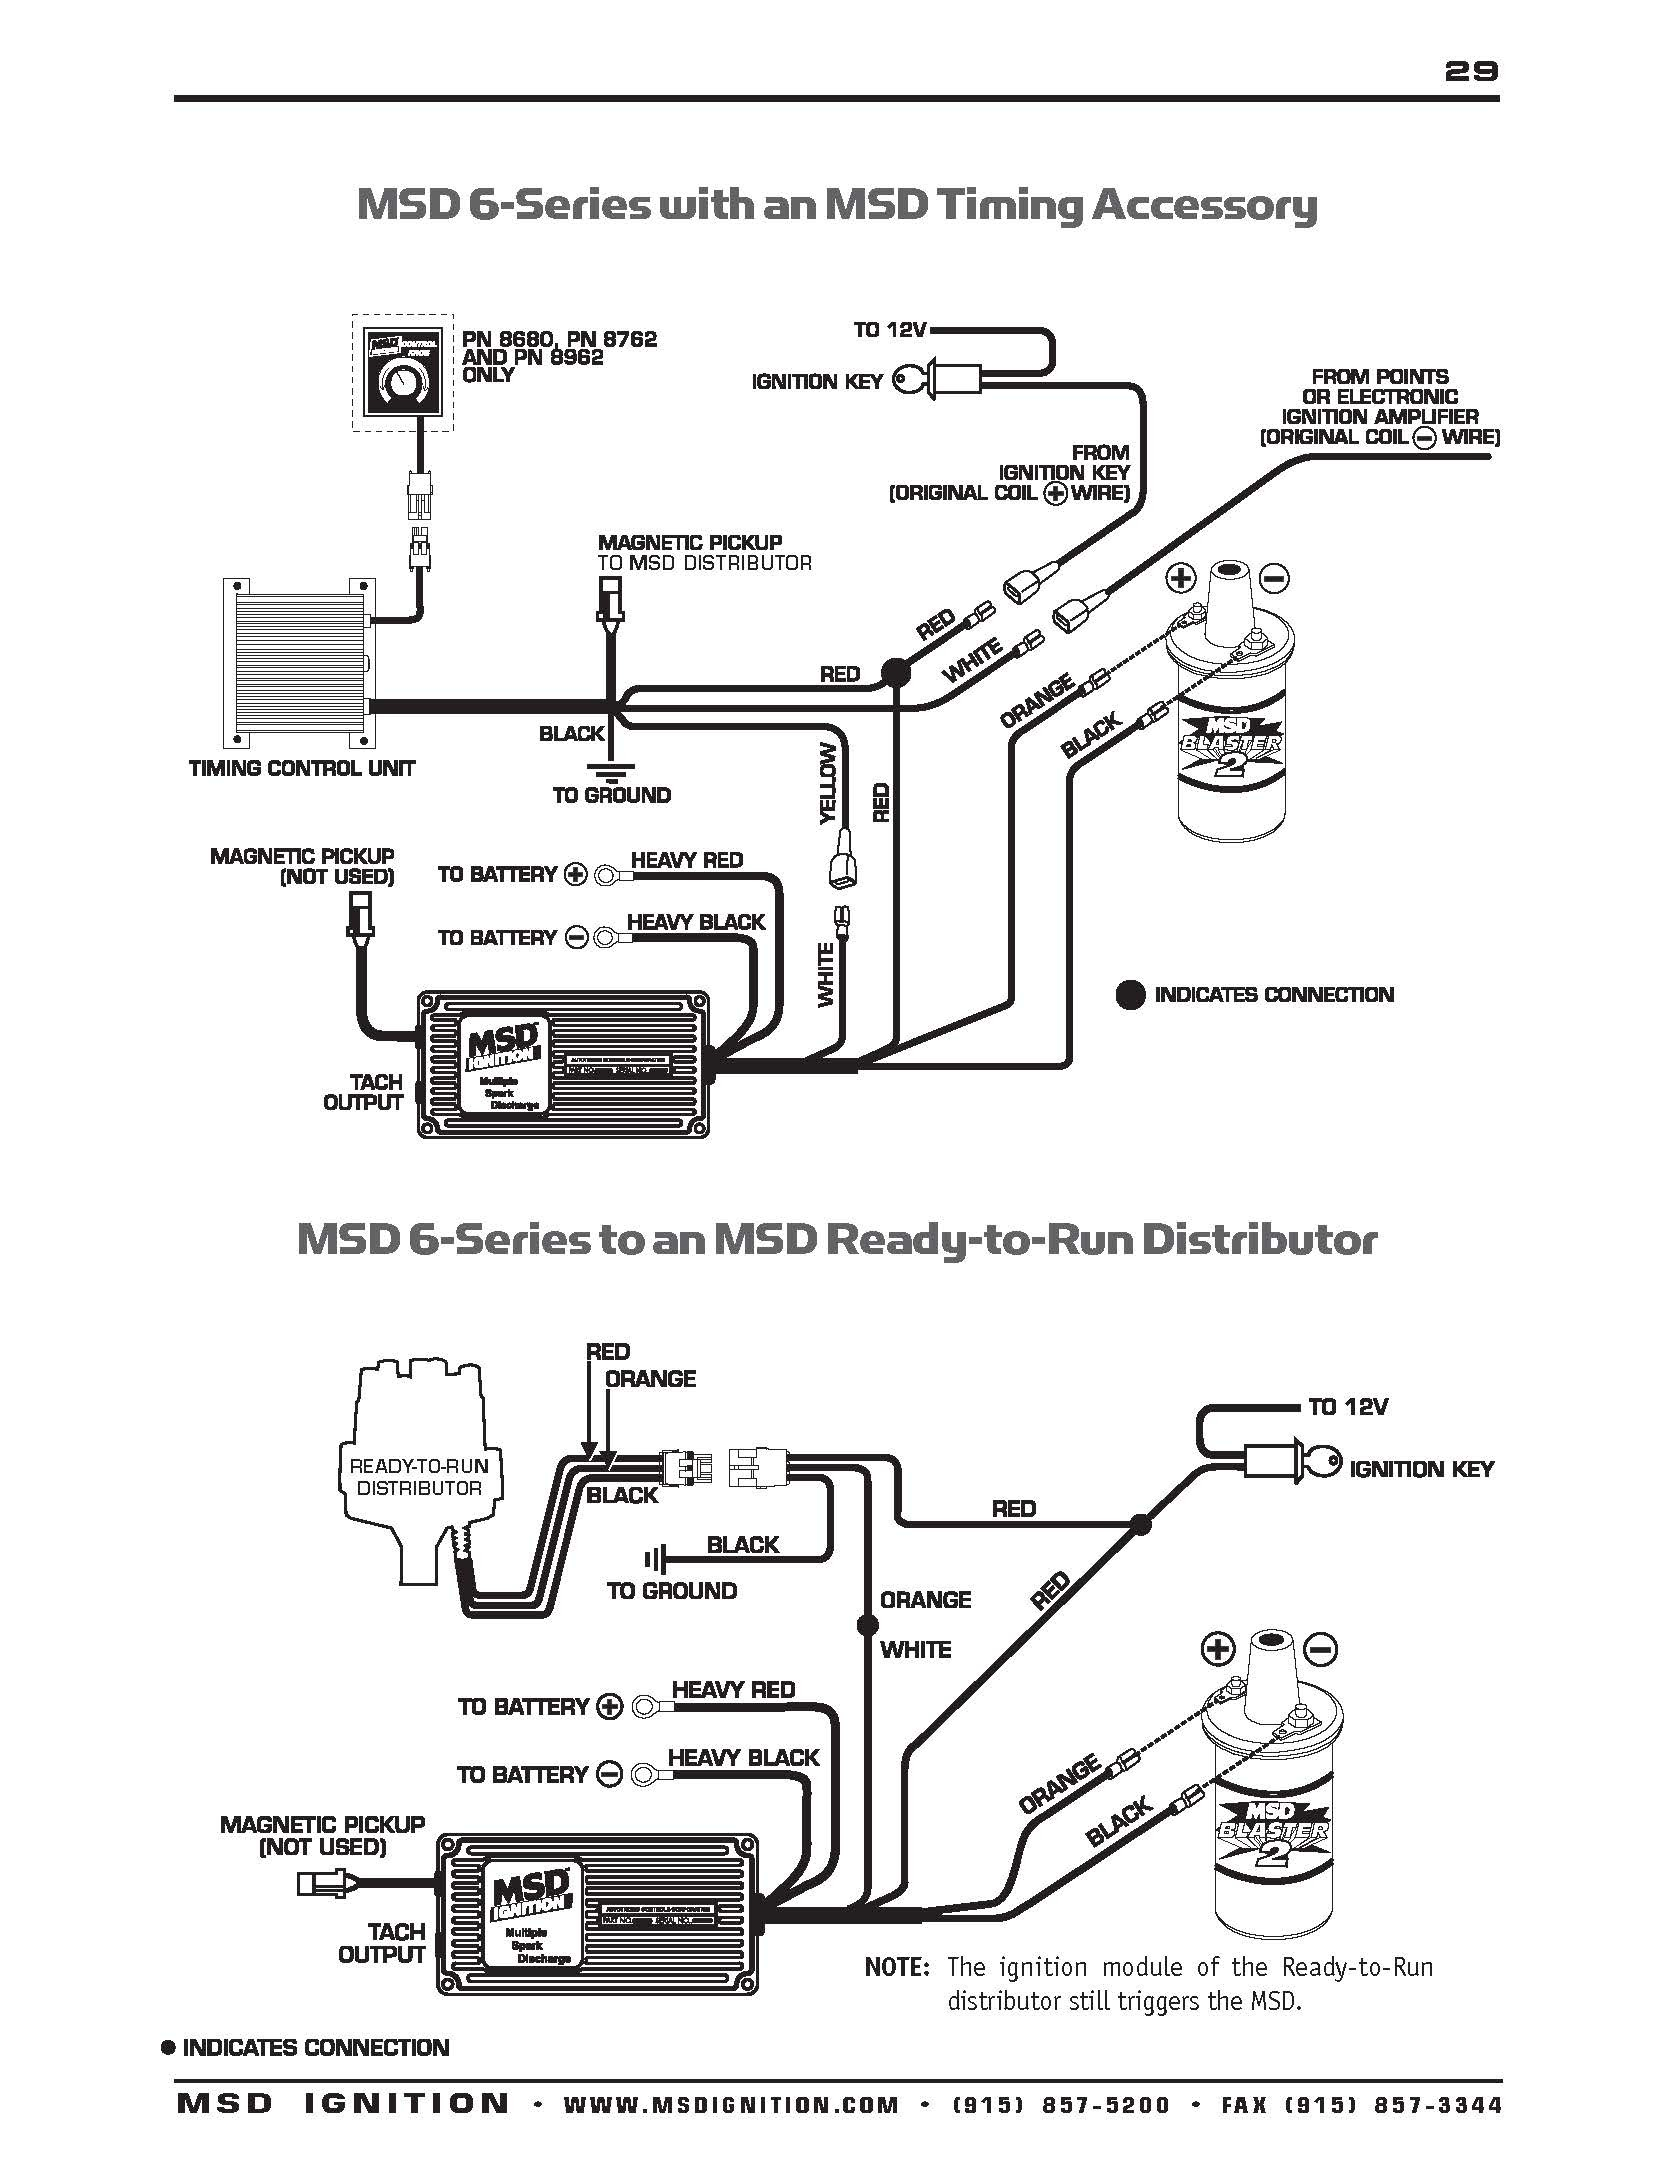 🏆 [DIAGRAM in Pictures Database] Wiring Diagram Of Msd Ignition 6ad Just  Download or Read Ignition 6ad - CLAUDETTE.VIDAL.FLOW-CHART.ONYXUM.COMComplete Diagram Picture Database - Onyxum.com